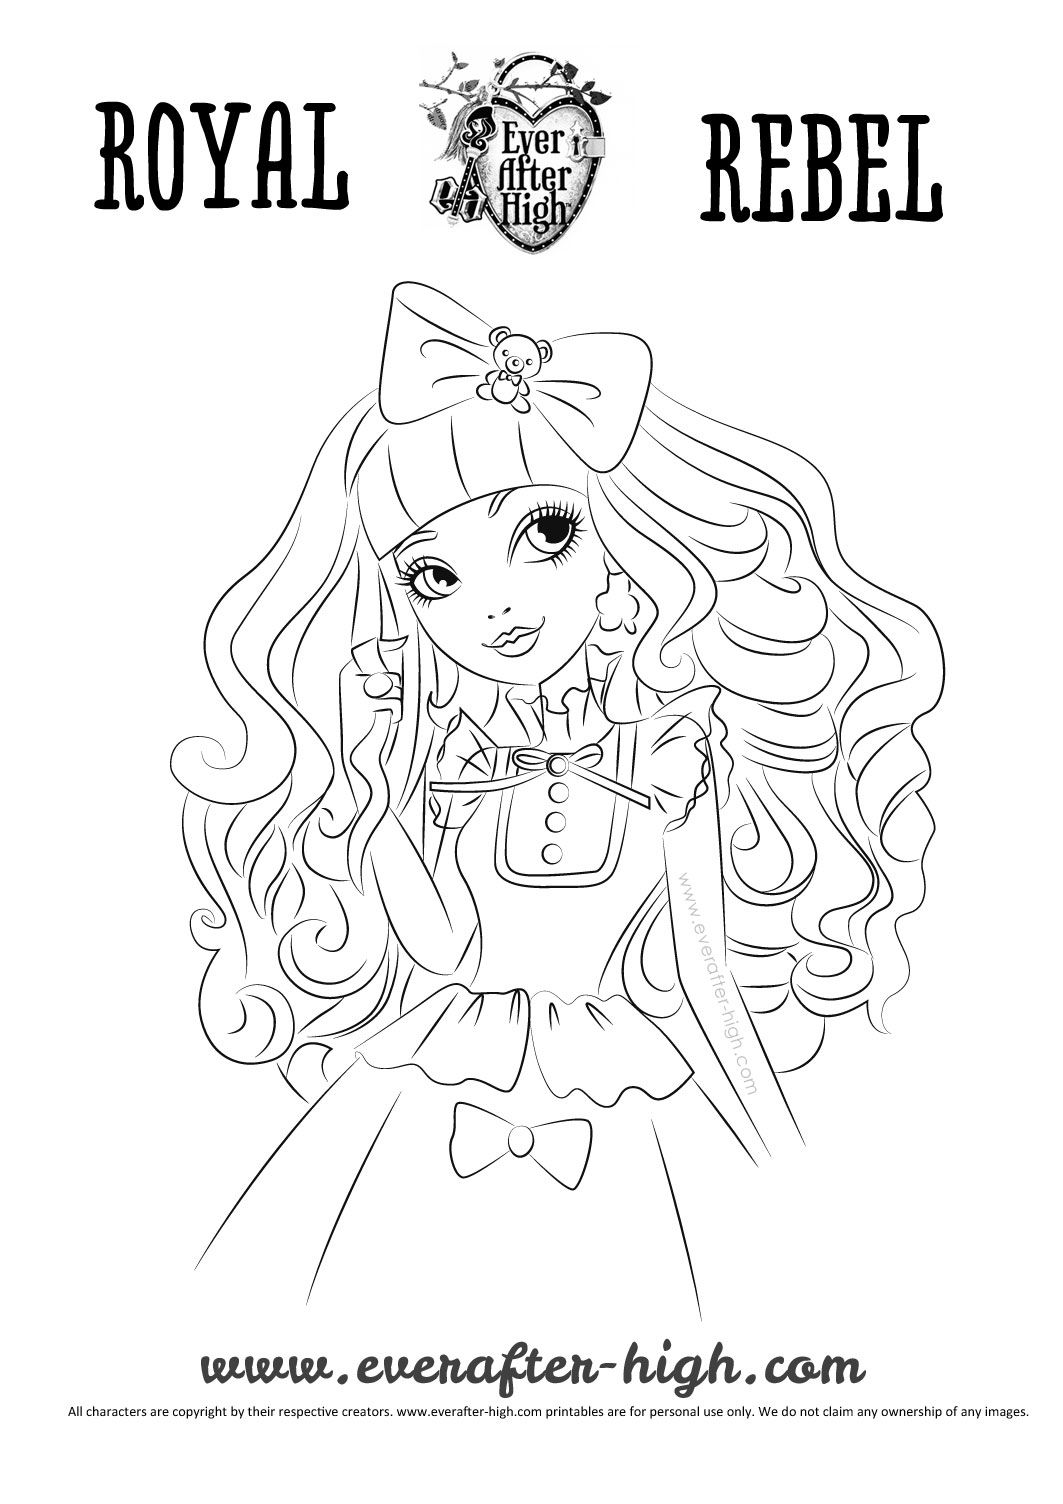 Blondie Lockes coloring page | Inkleur | Pinterest